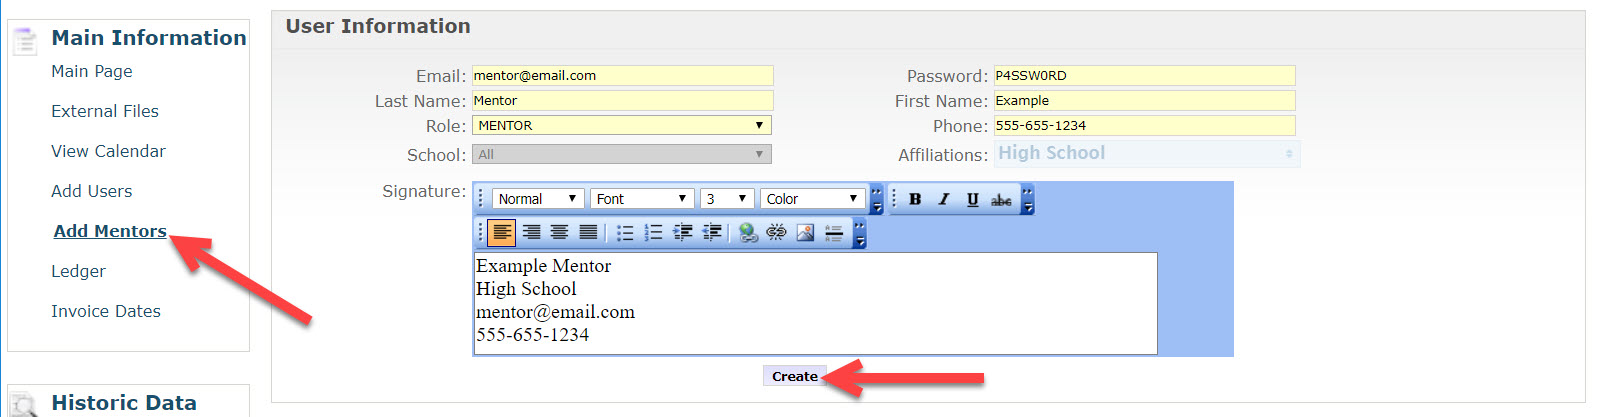 The Add Mentors form is displayed showing the fields described above. An arrow points to the Create button at the bottom of the Signature text box.